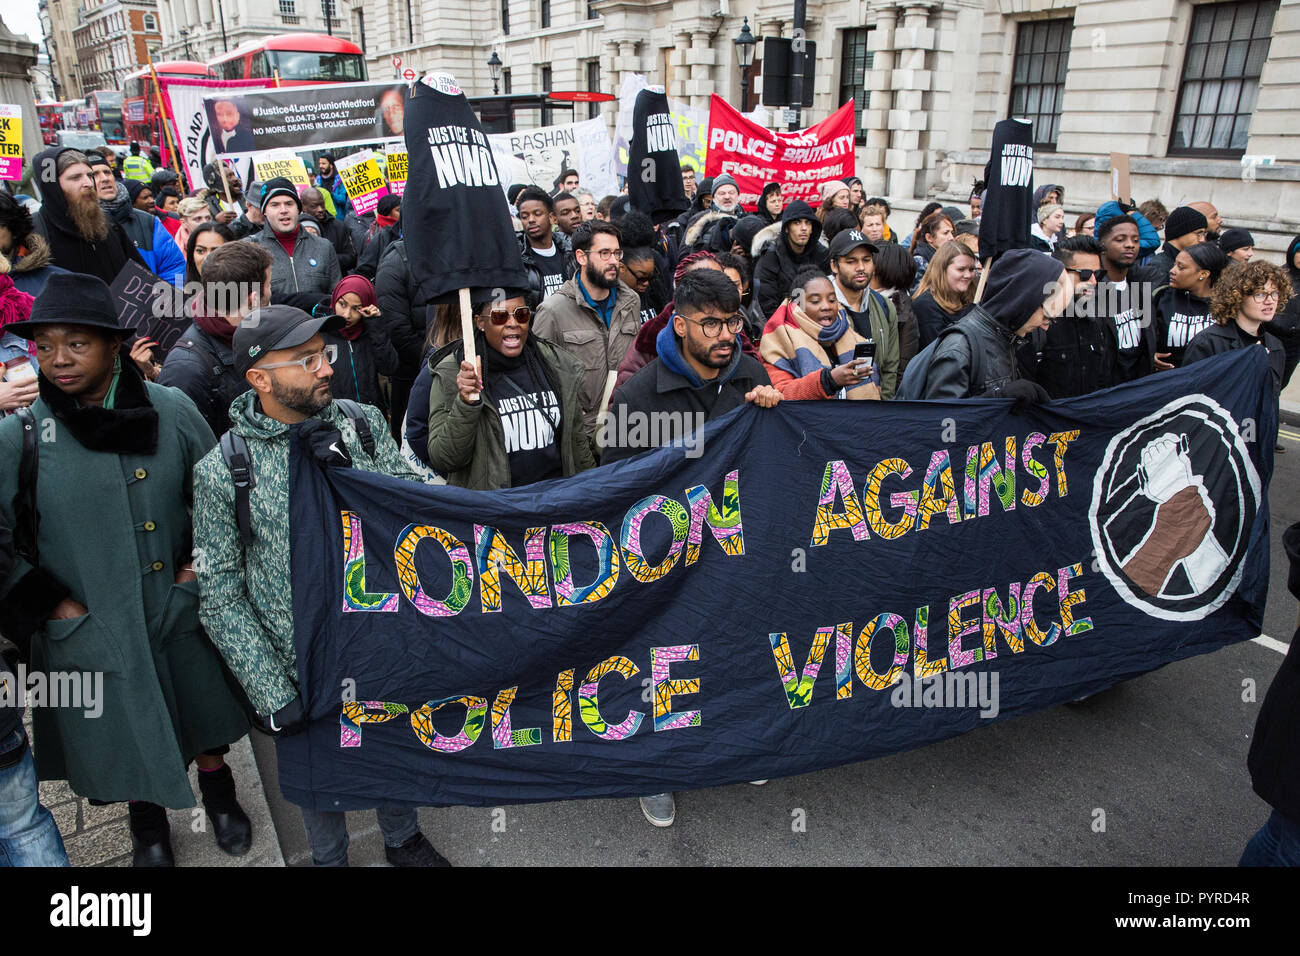 London, UK. 27th October, 2018. Supporters of London Against Police Violence join campaigners from the United Families and Friends Campaign (UFFC). - Stock Image